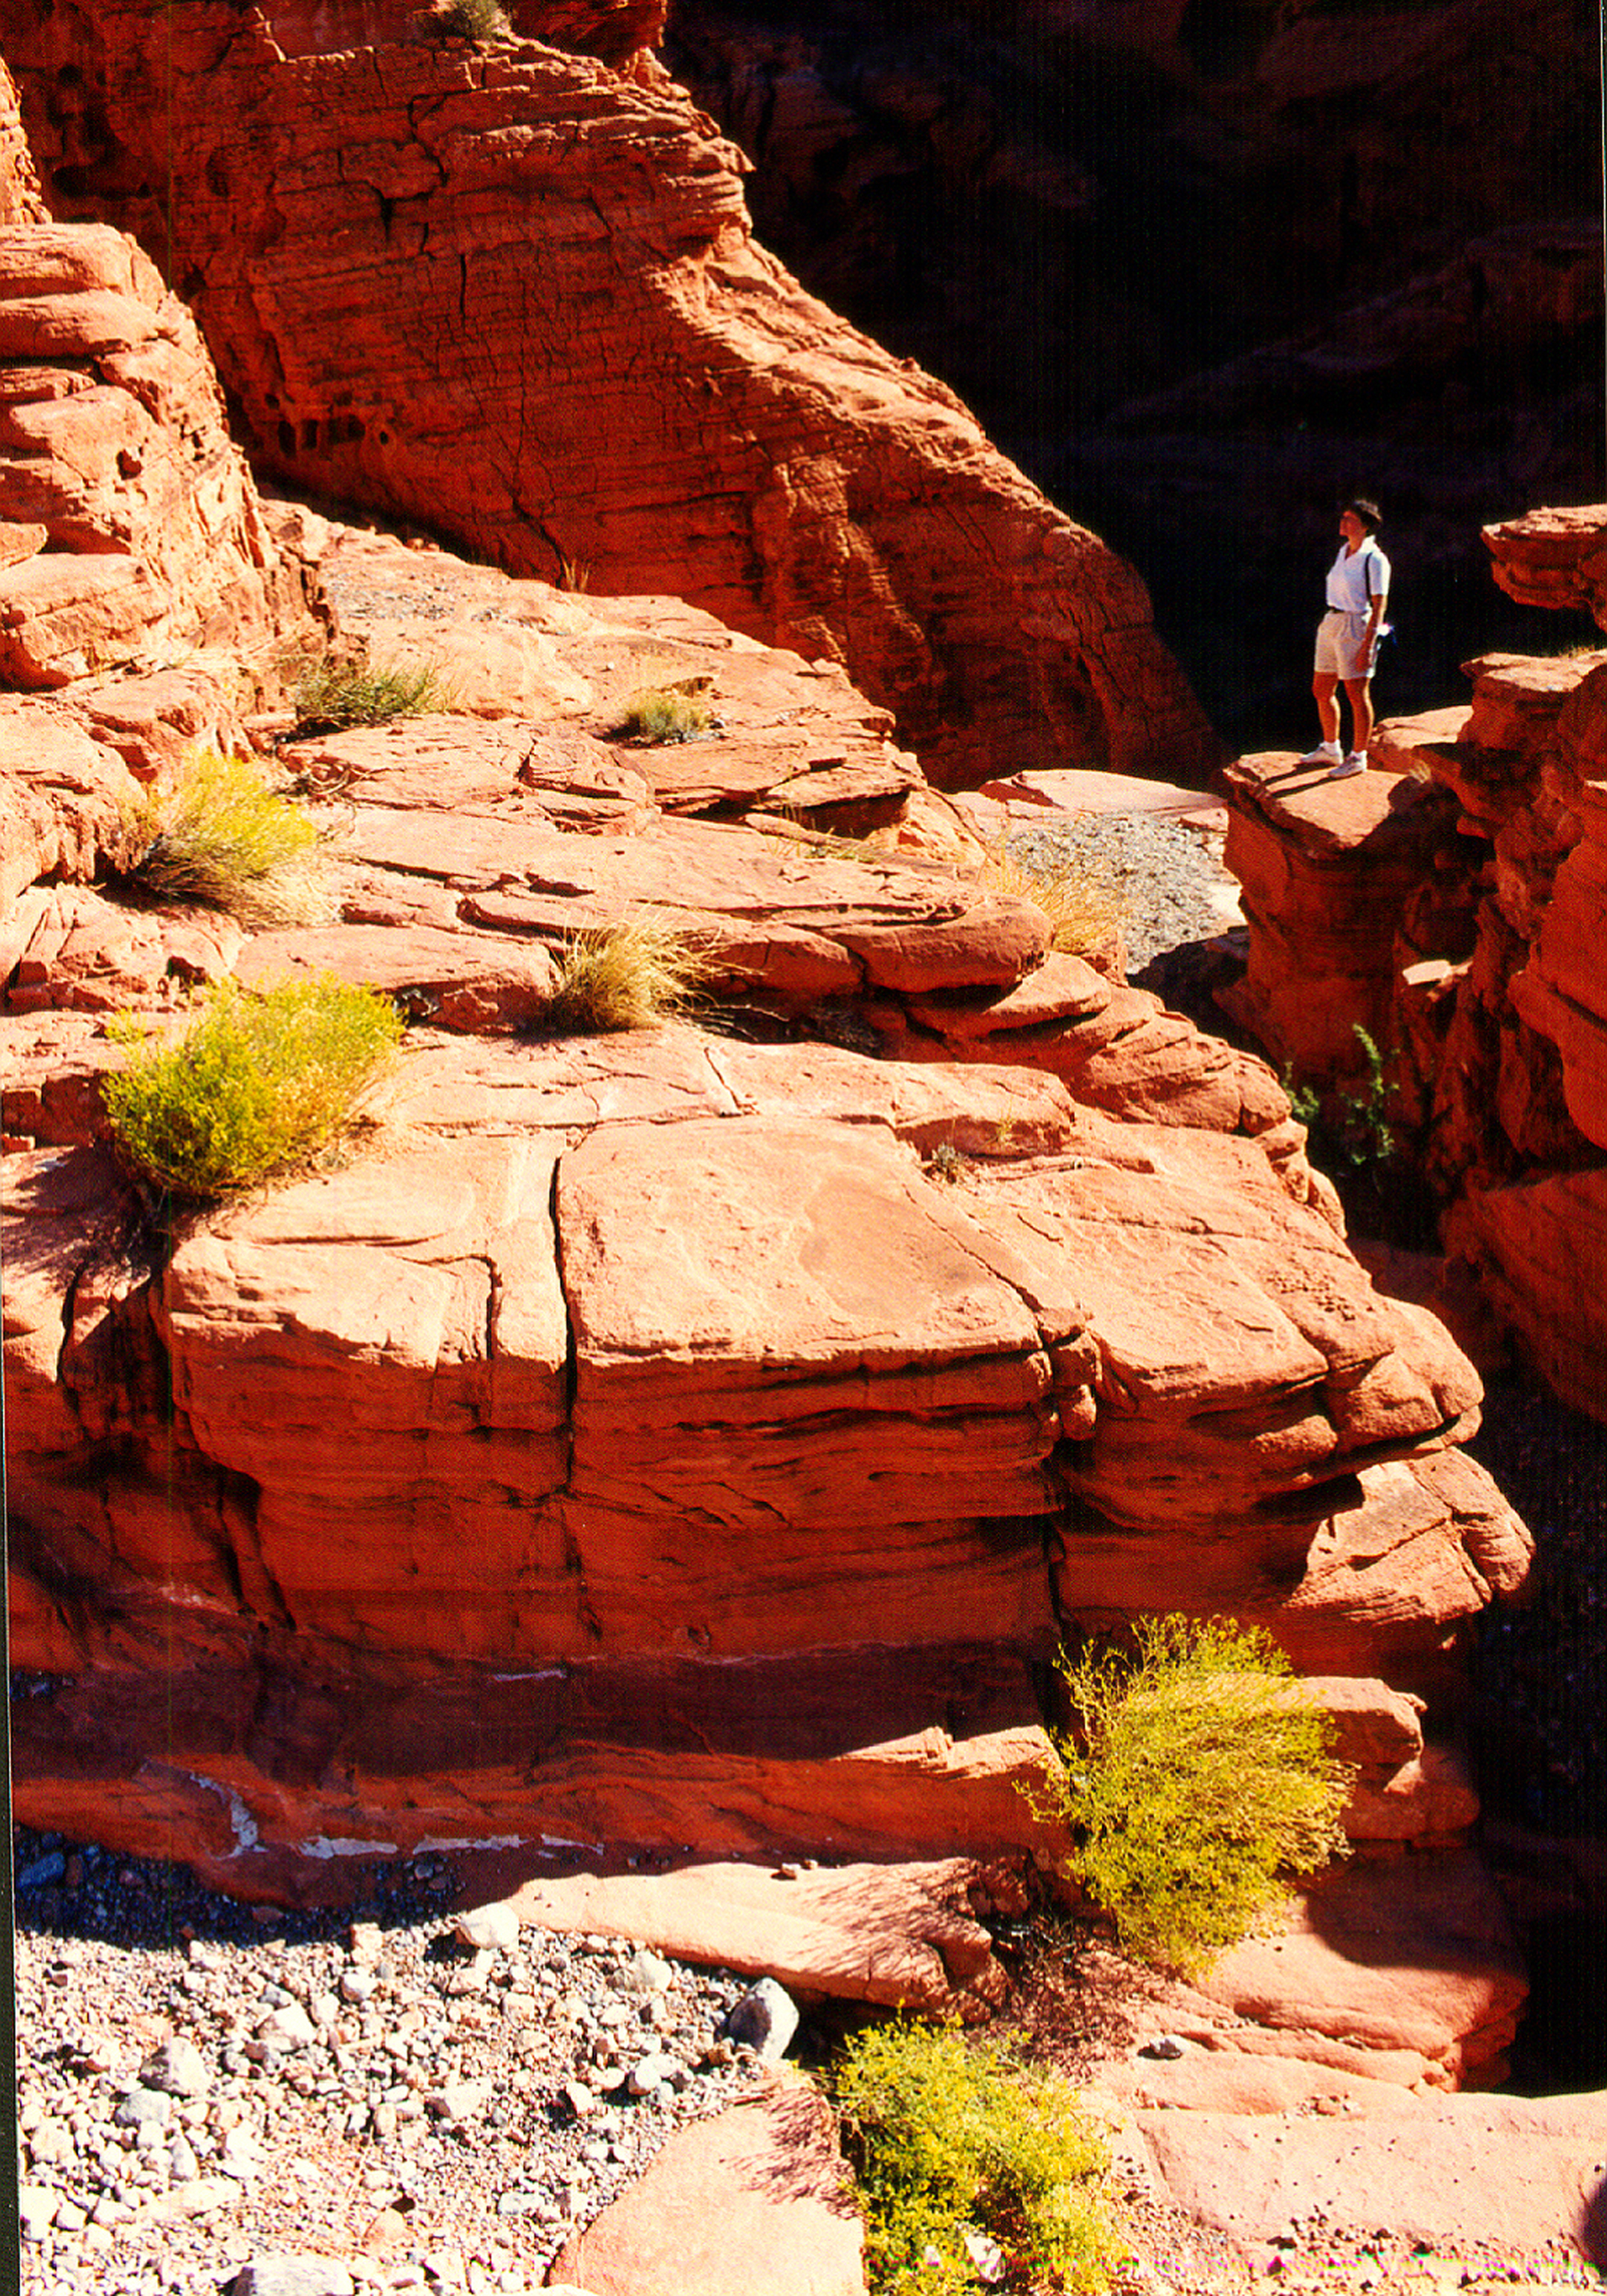 Lady in the Valley of Fire